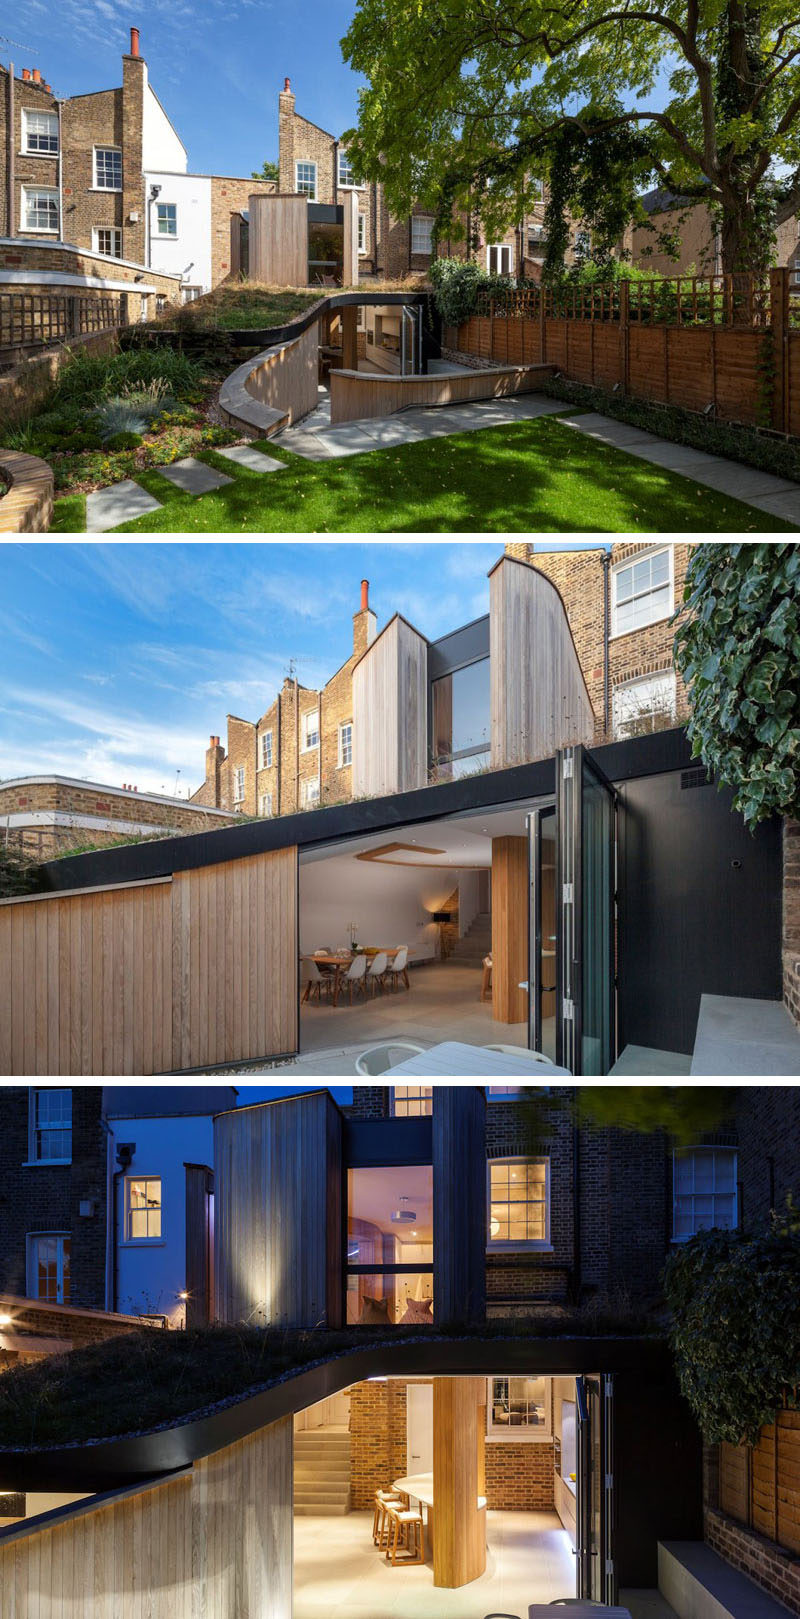 14 Examples Of British Houses With Contemporary Extensions // The modern light wood paneled extension built onto the back of this British home is concealed by an angled green roof that connects to the rest of the garden and curves around the top of the extension.